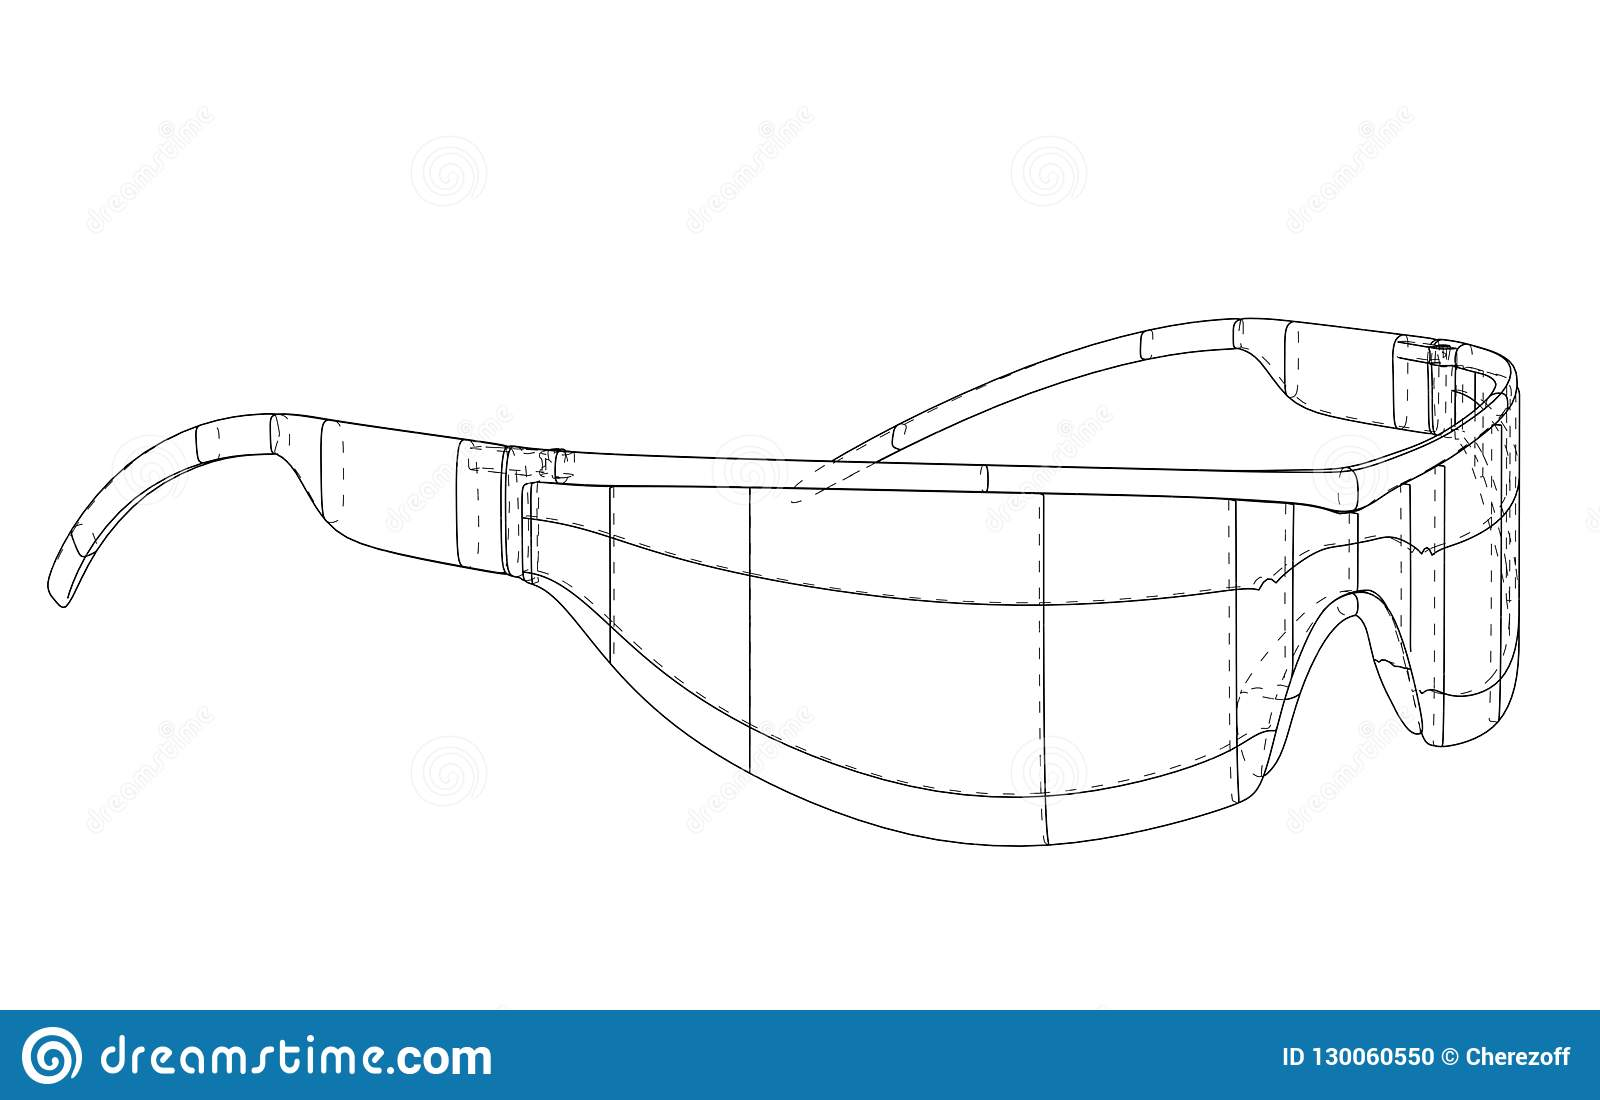 540e386449 VR Virtual Reality Glasses Concept. Vector rendering of 3d. Wire-frame  style. The layers of visible and invisible lines are separated